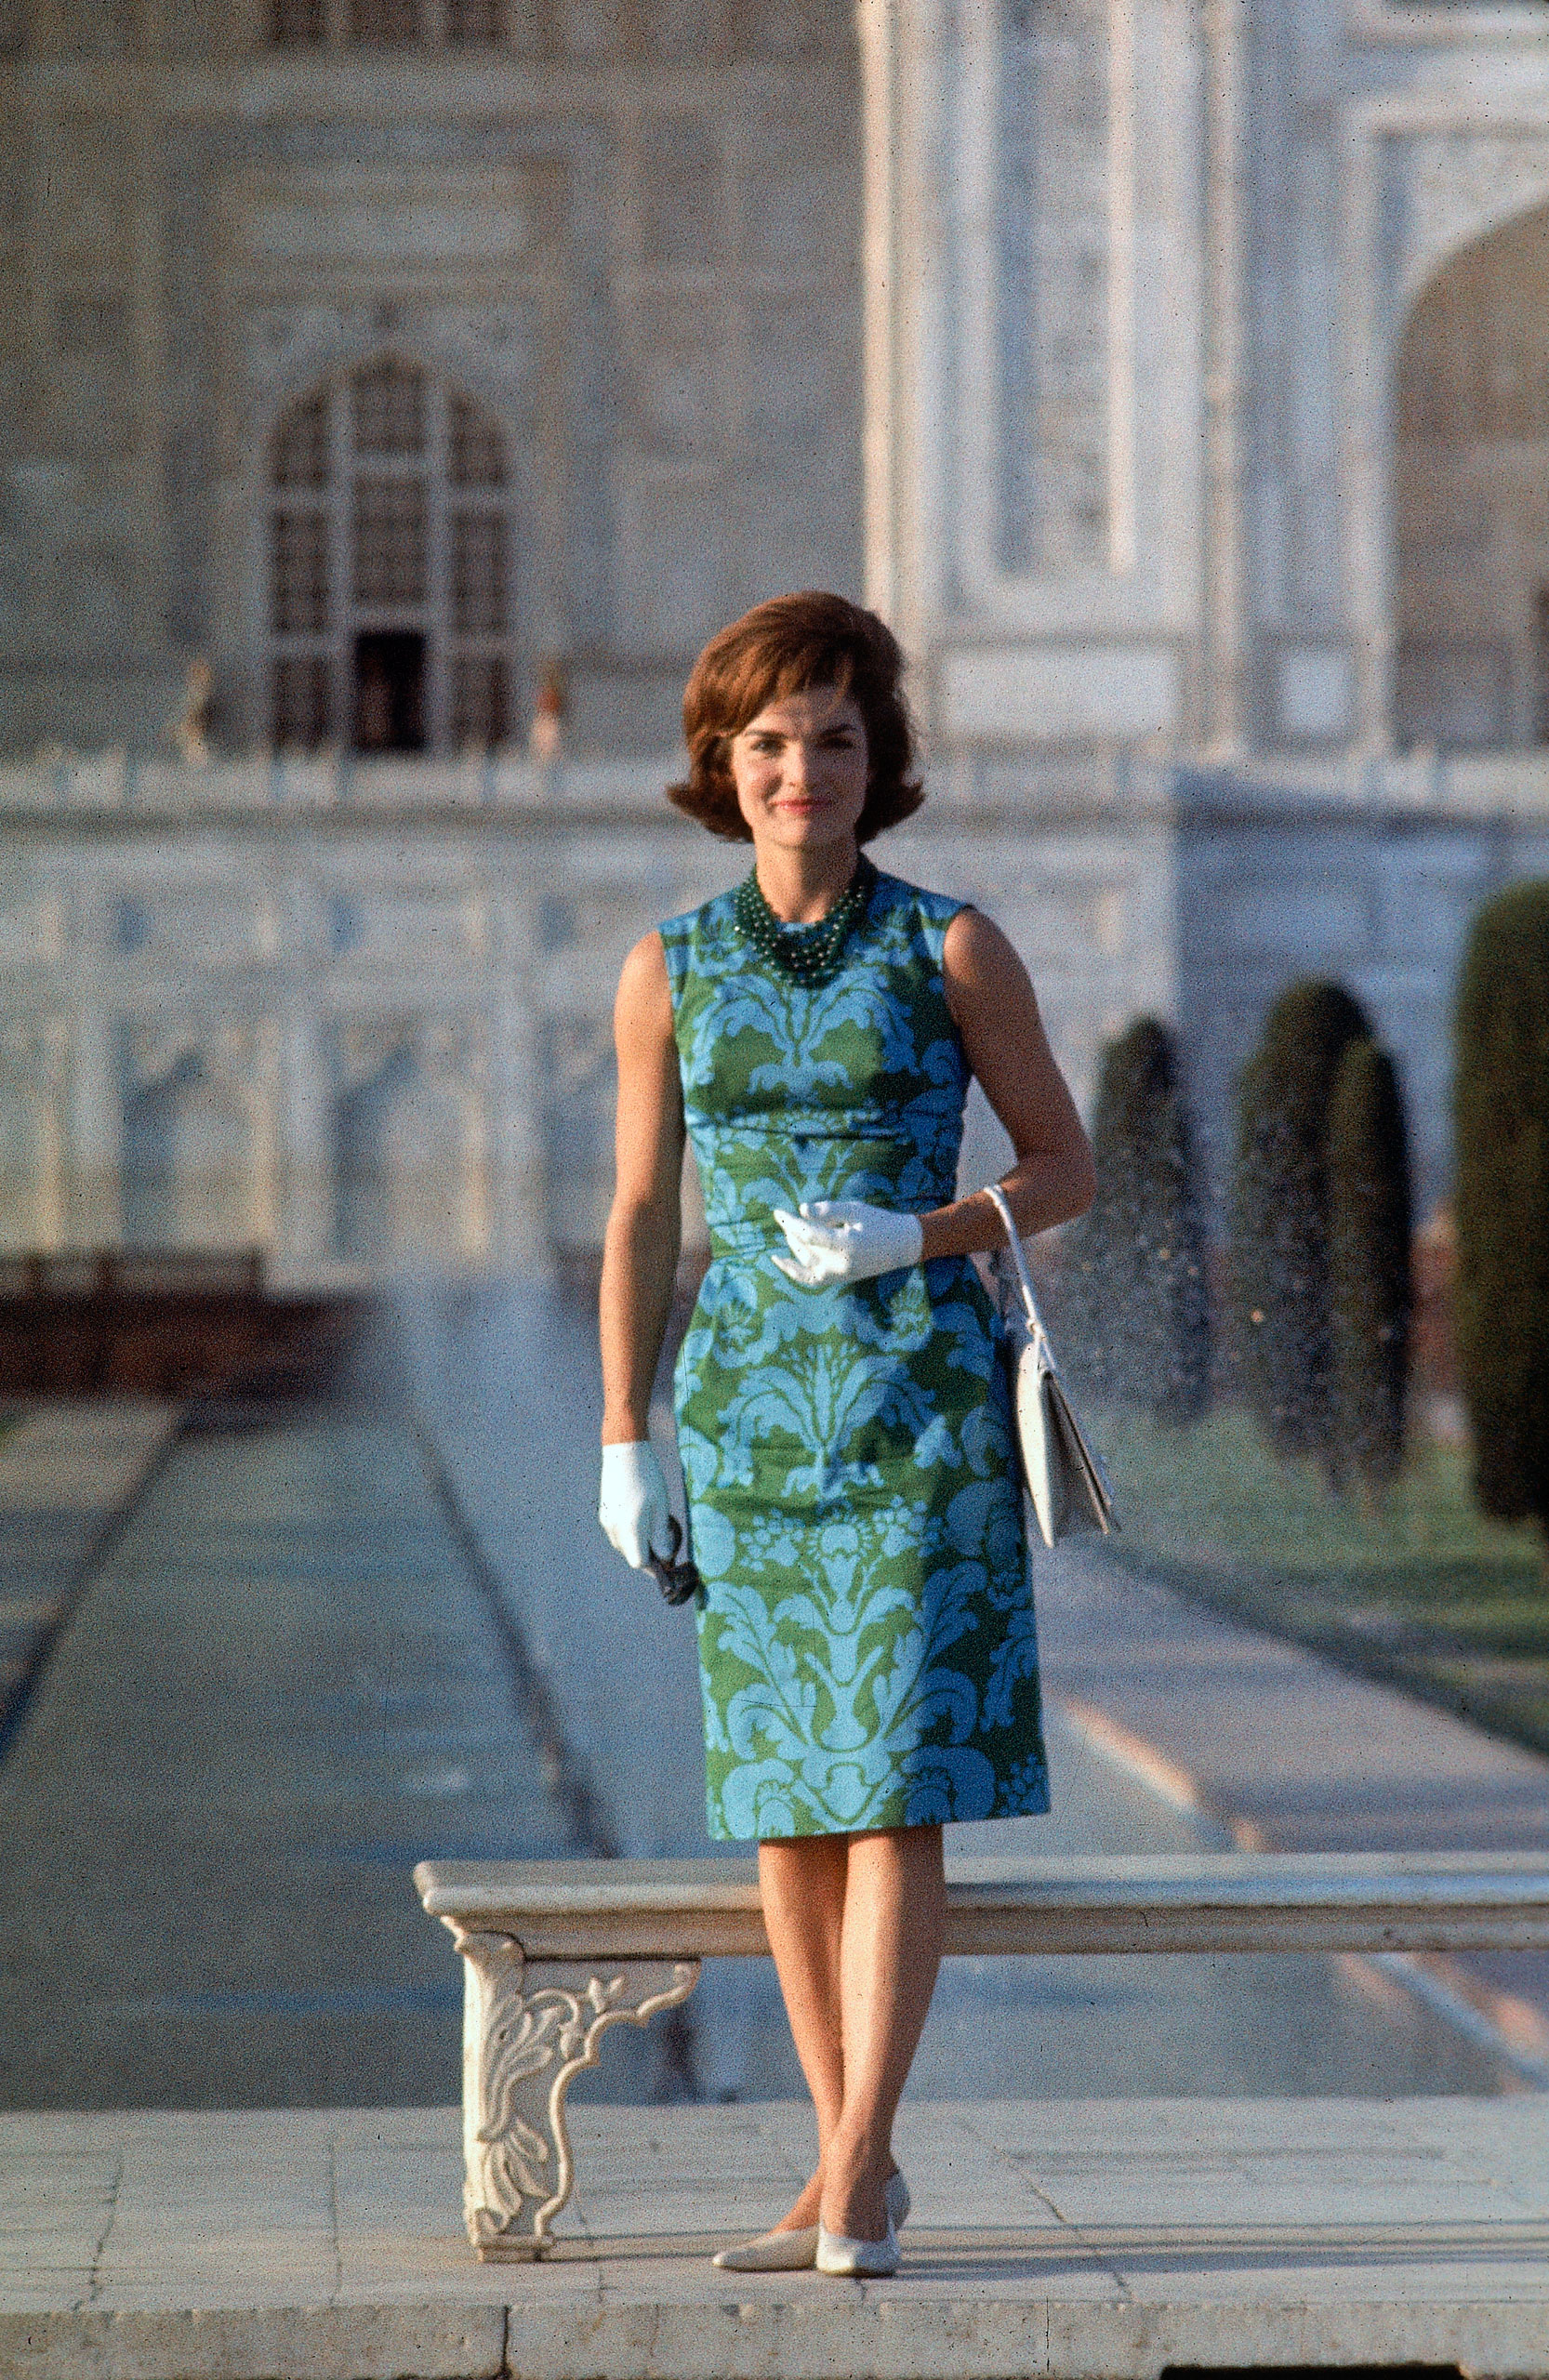 First Lady Jackie Kennedy standing on the grounds of the Taj Mahal during visit to India, 1962.